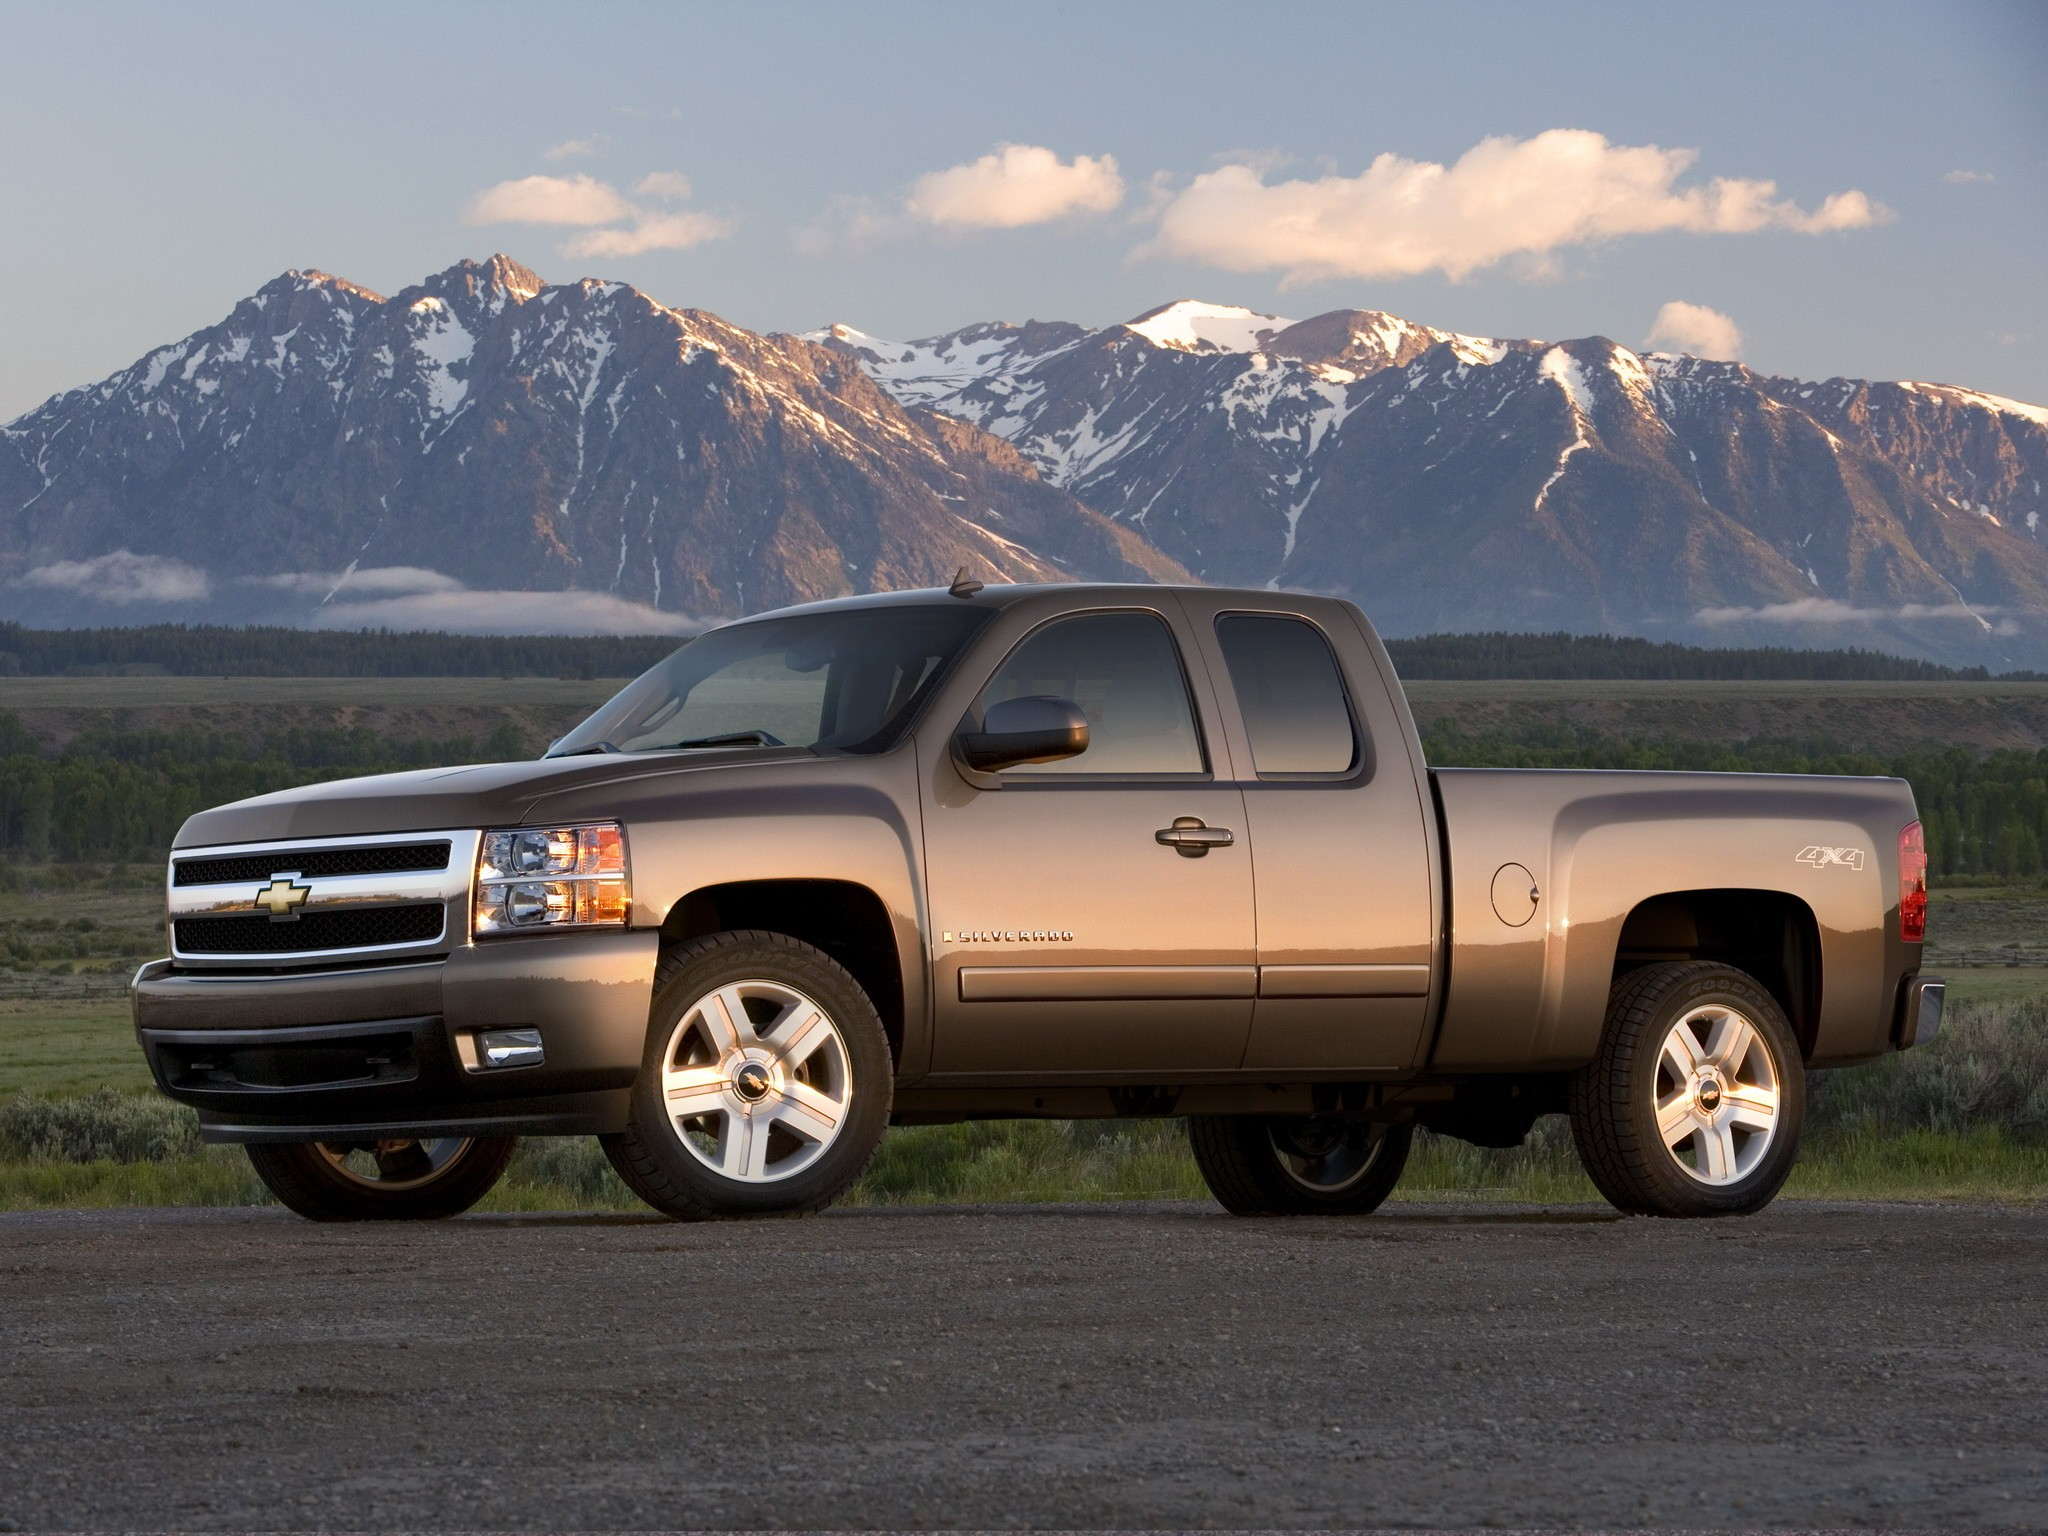 chevrolet silverado 1500 extended cab specs 2008 2009 2010 2011 2012 autoevolution. Black Bedroom Furniture Sets. Home Design Ideas